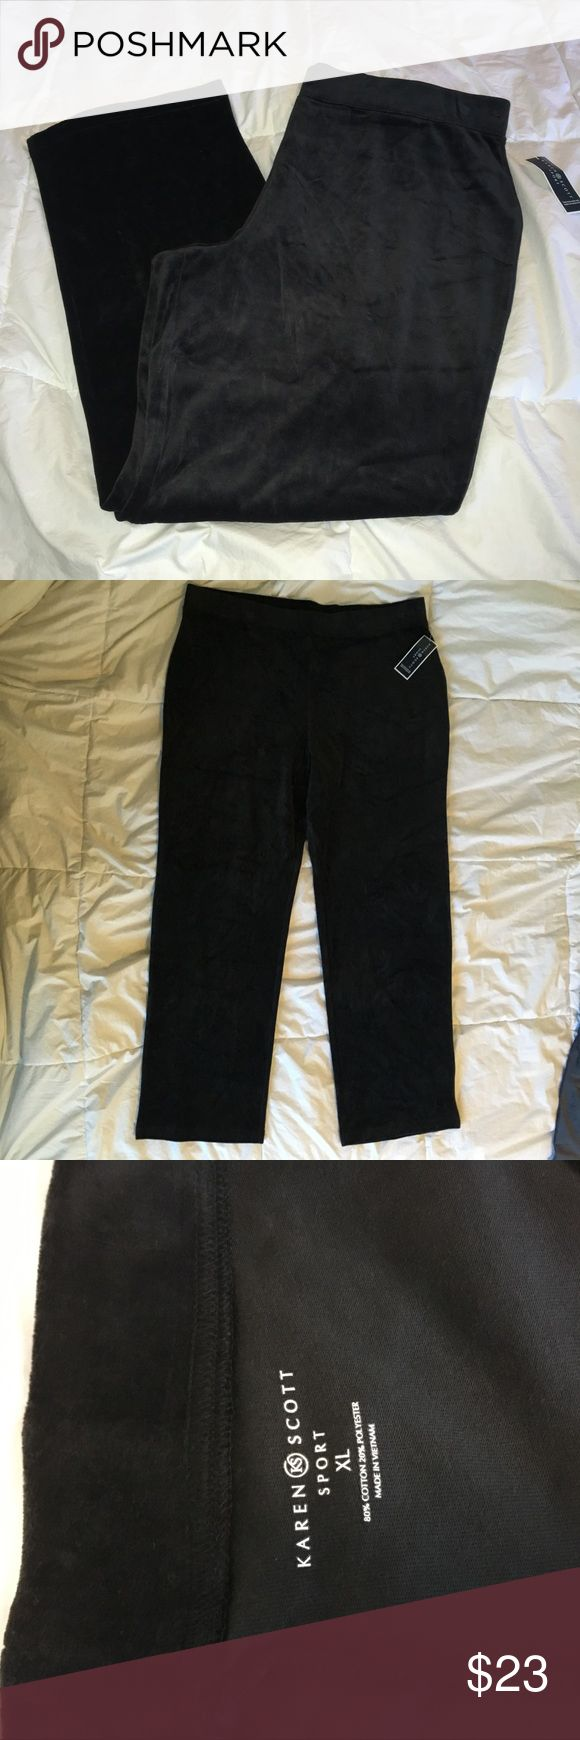 🛍 NWT szXL Karen Scott Sport Velour pants ▪️Size XL ▪️black velour (80% cotton) ▪️near-perfect condition (NWT)- has some impressions around the waist. They are hard to notice but I photographed them in the last photo ▪️fits true to size  ▪️any questions comment below  ▪️offers are welcomed Karen Scott Pants